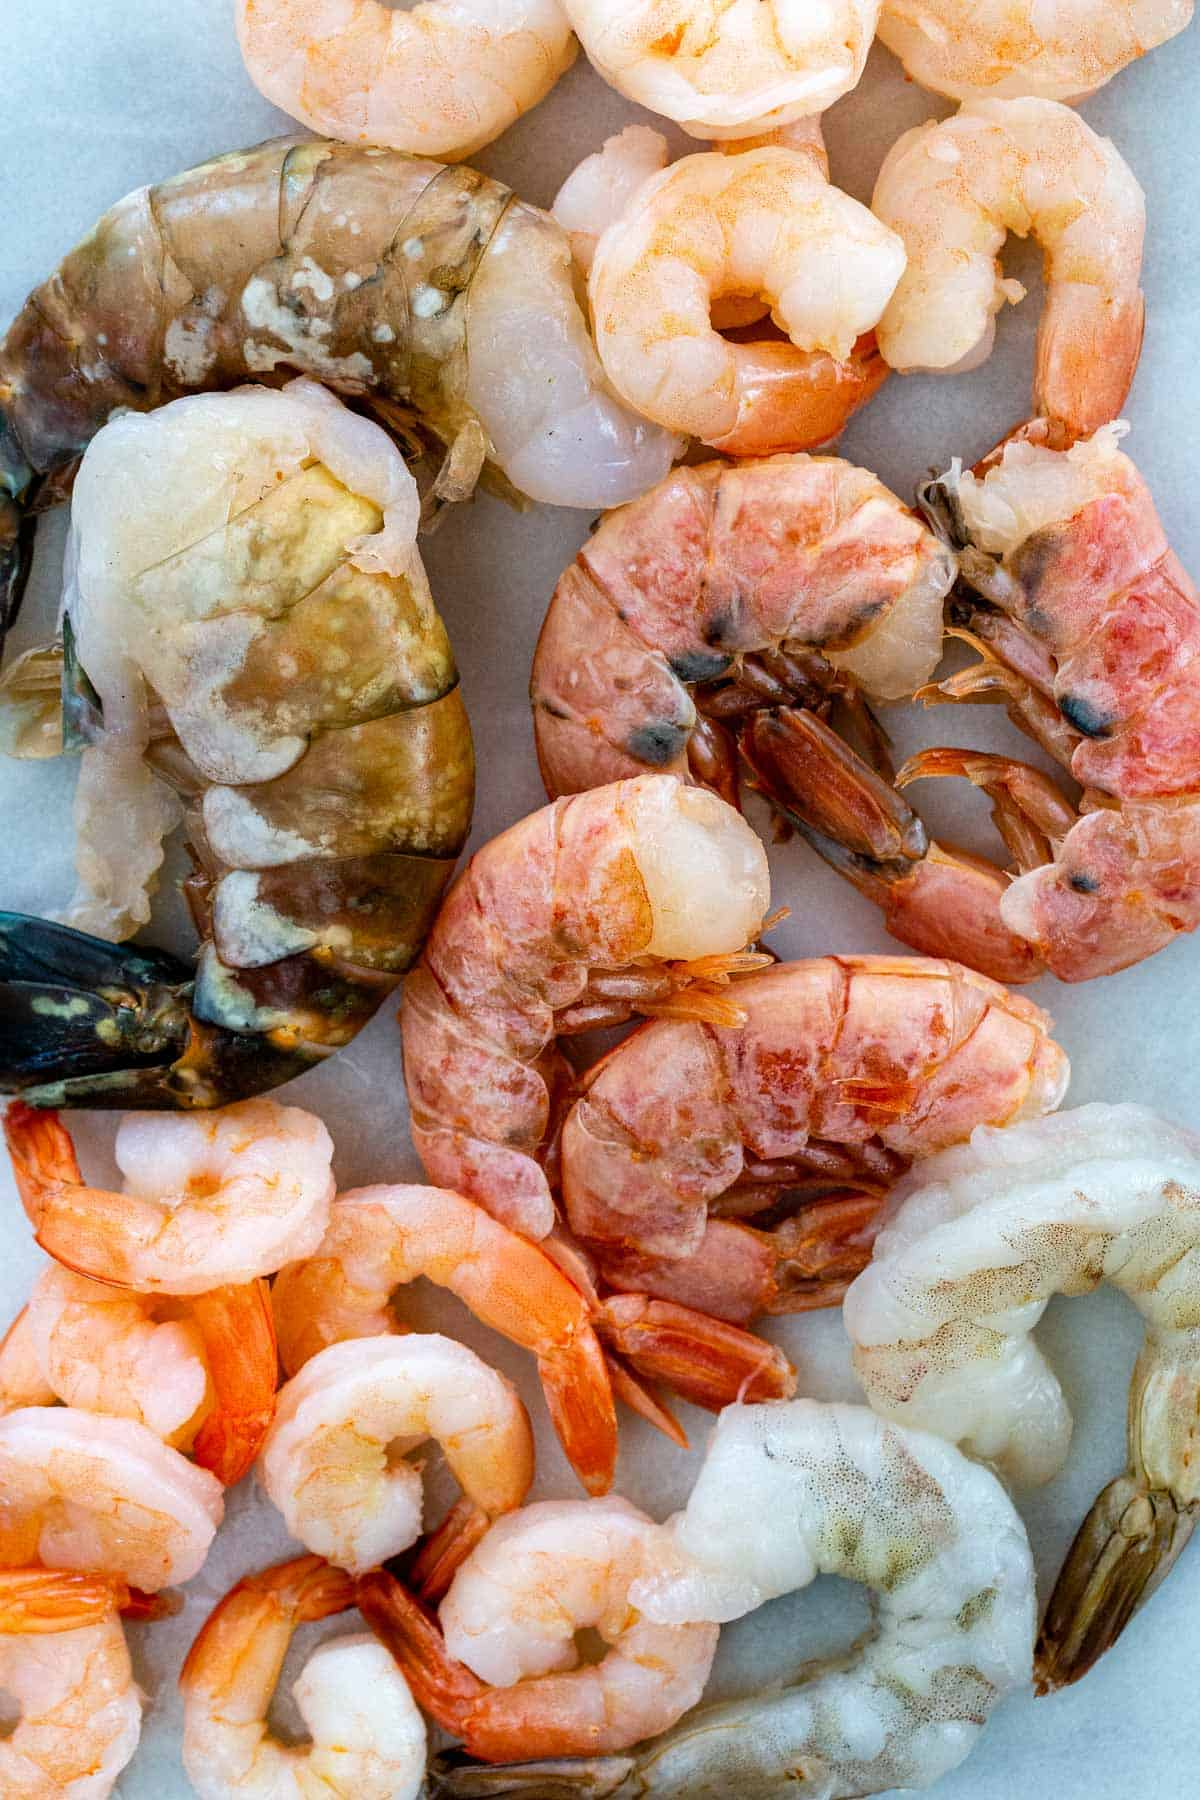 There are several types and sizes of shrimp available in the seafood section of your local supermarket, learn how to shop and what to look for. #shrimp #seafood #shrimpsizes